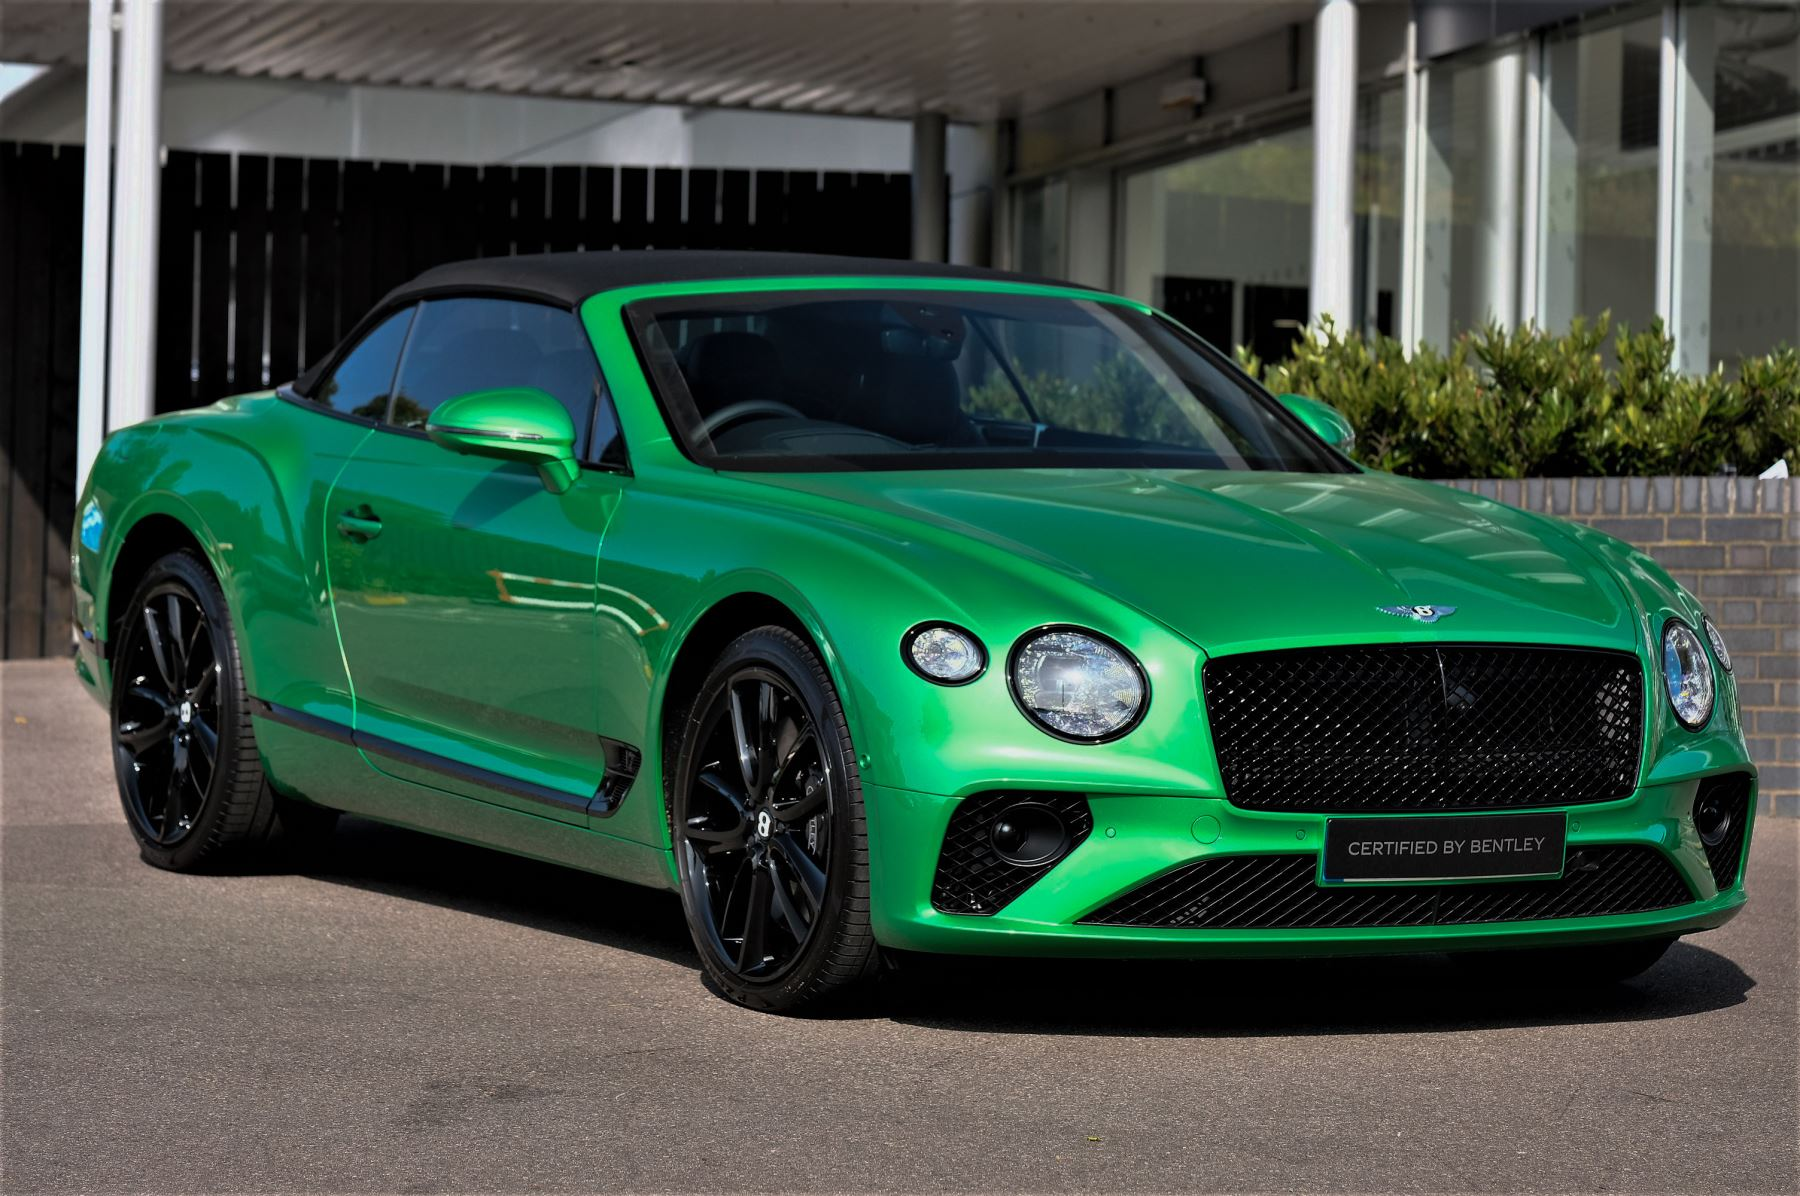 Bentley Continental GTC 6.0 W12 2dr Mulliner Driving Specification image 1